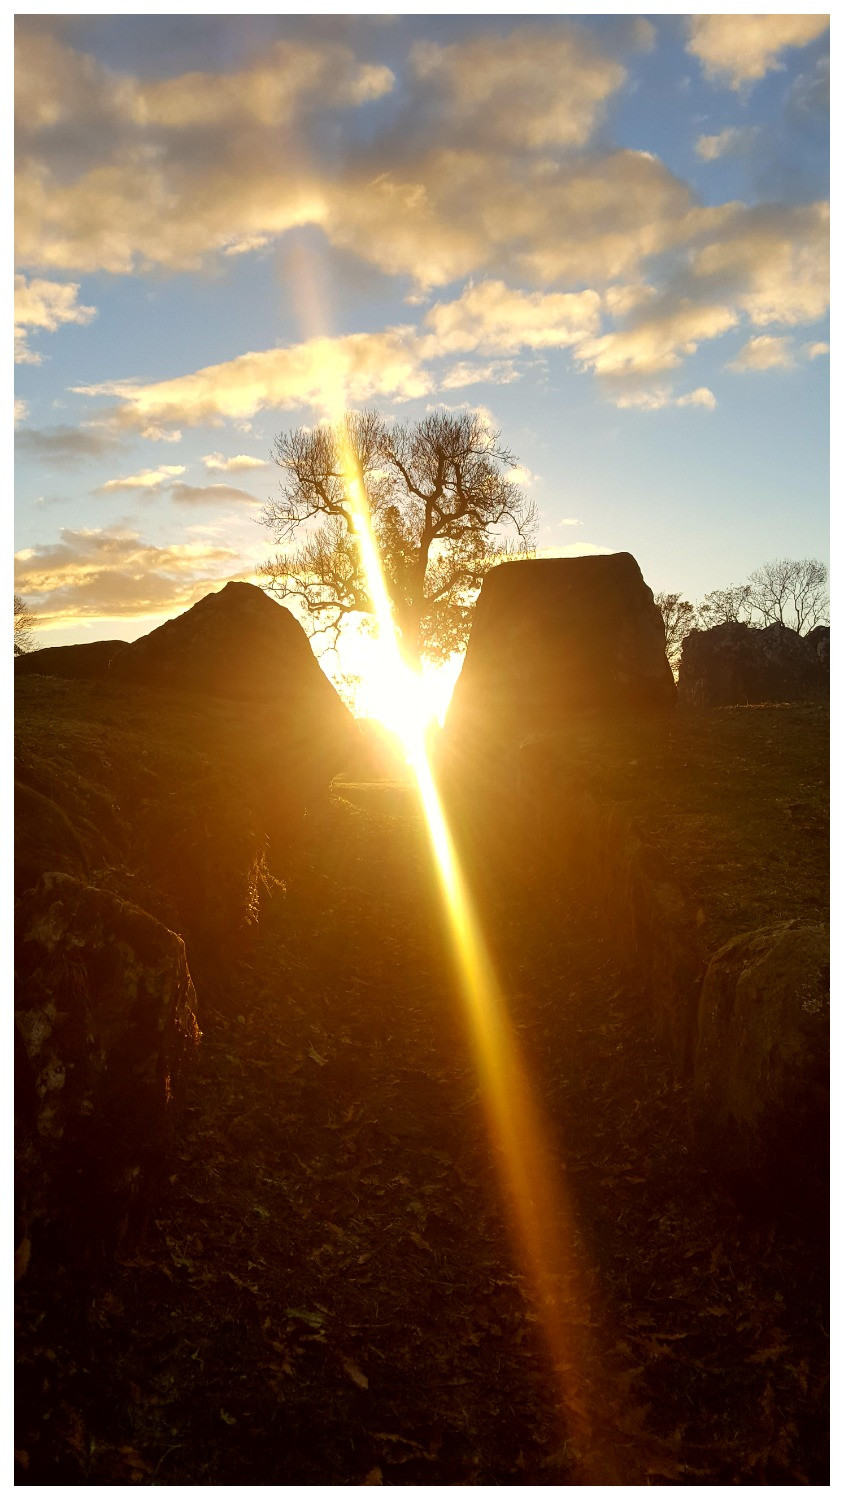 A magnificent photograph taken recently by Kathy Tiernan, Artist, at Grange Stone Circle